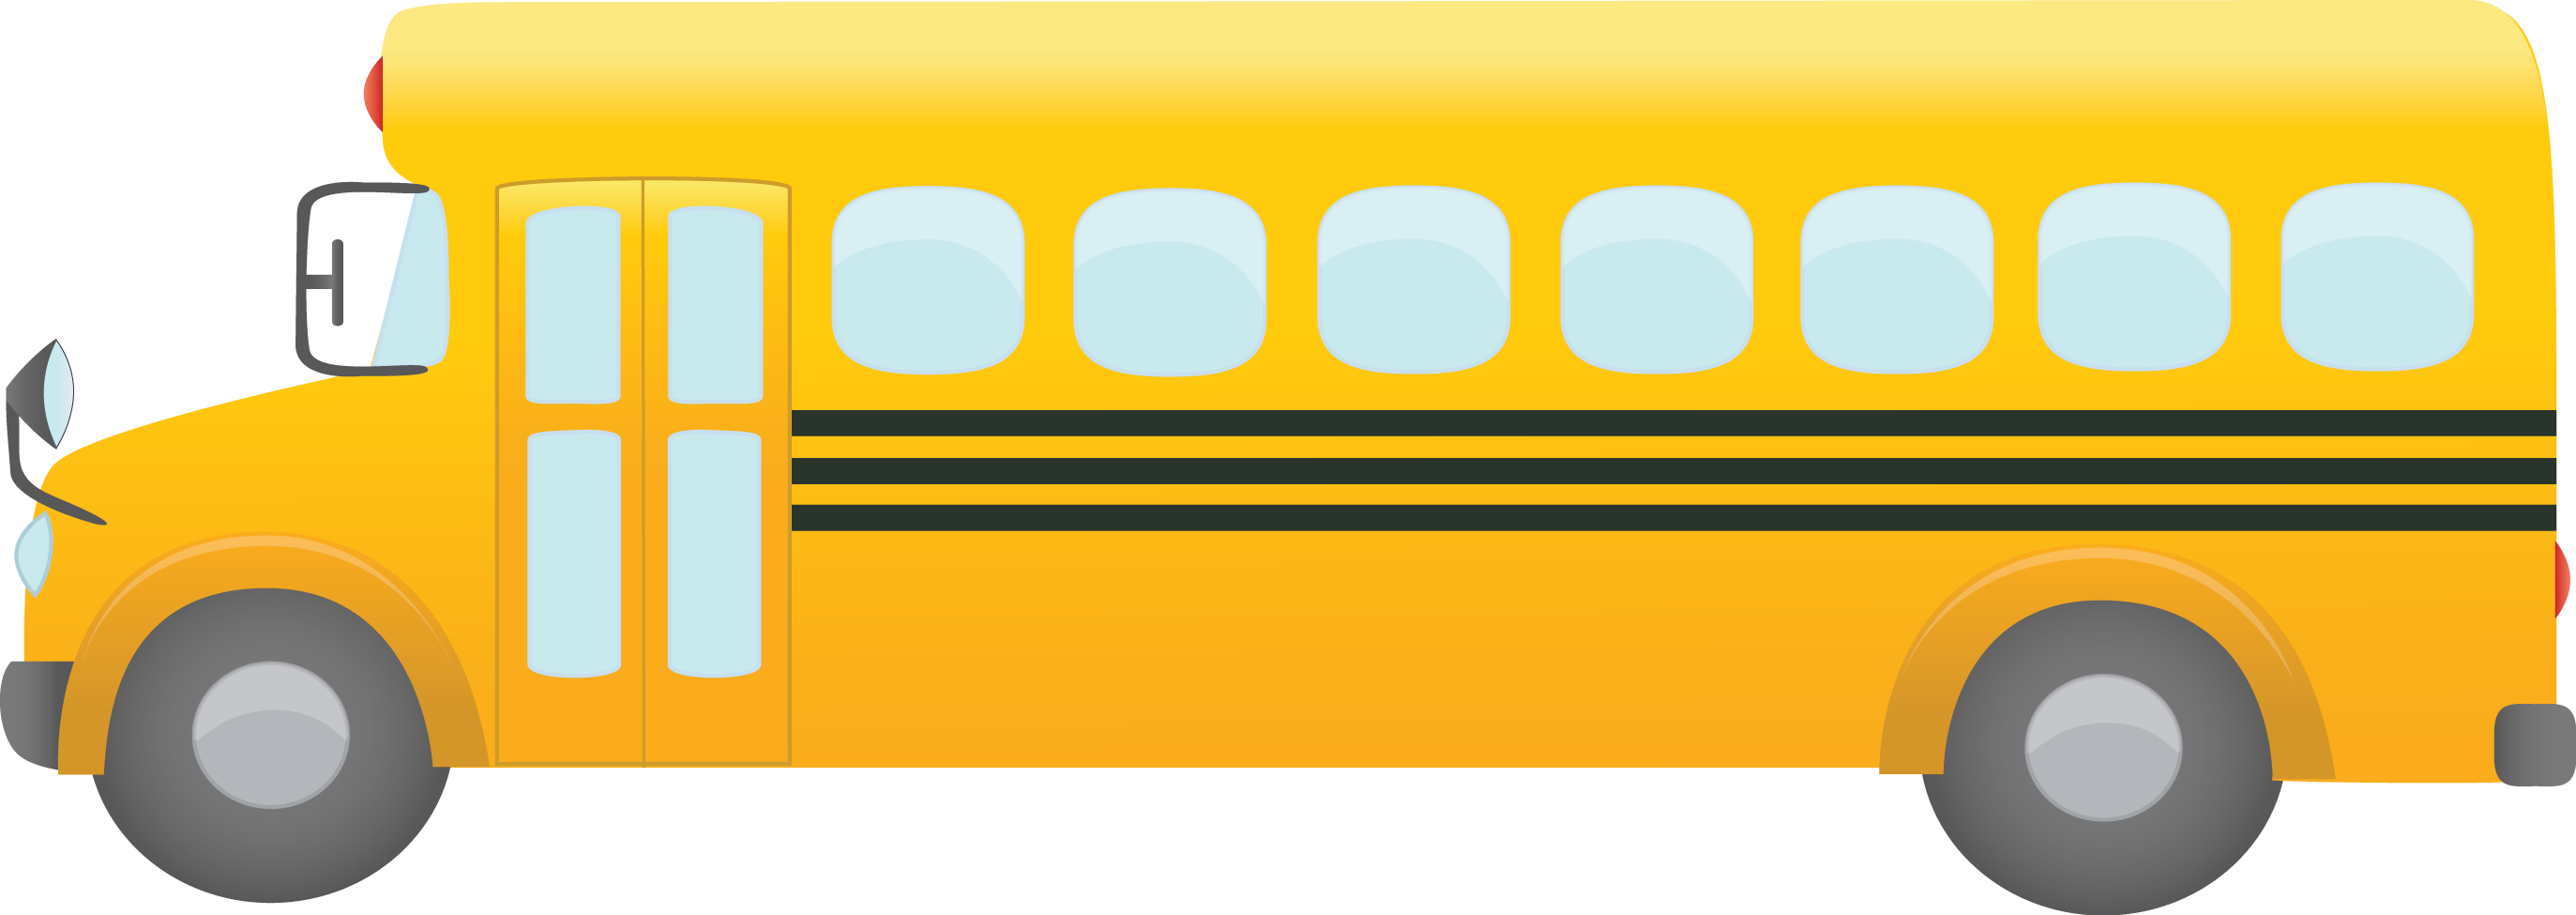 Bus clipart transparent background. Png pictures free icons